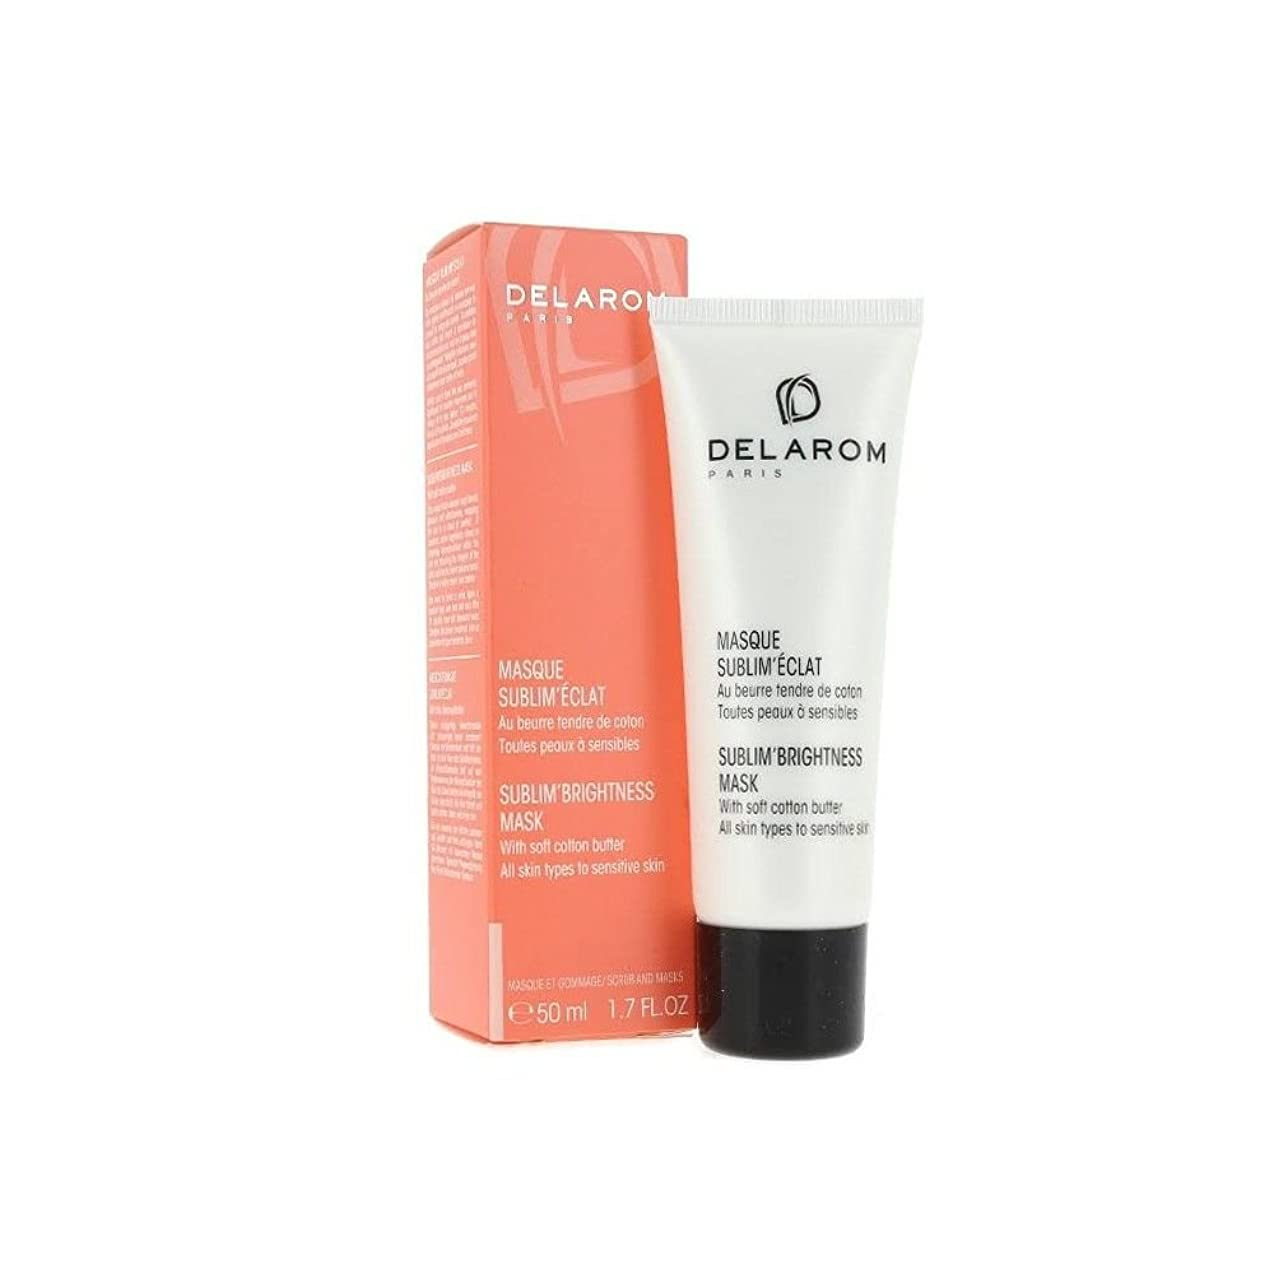 拮抗する確認してください平らなDELAROM Sublim' Brightness Mask - For All Skin Types to Sensitive Skin 50ml/1.7oz並行輸入品